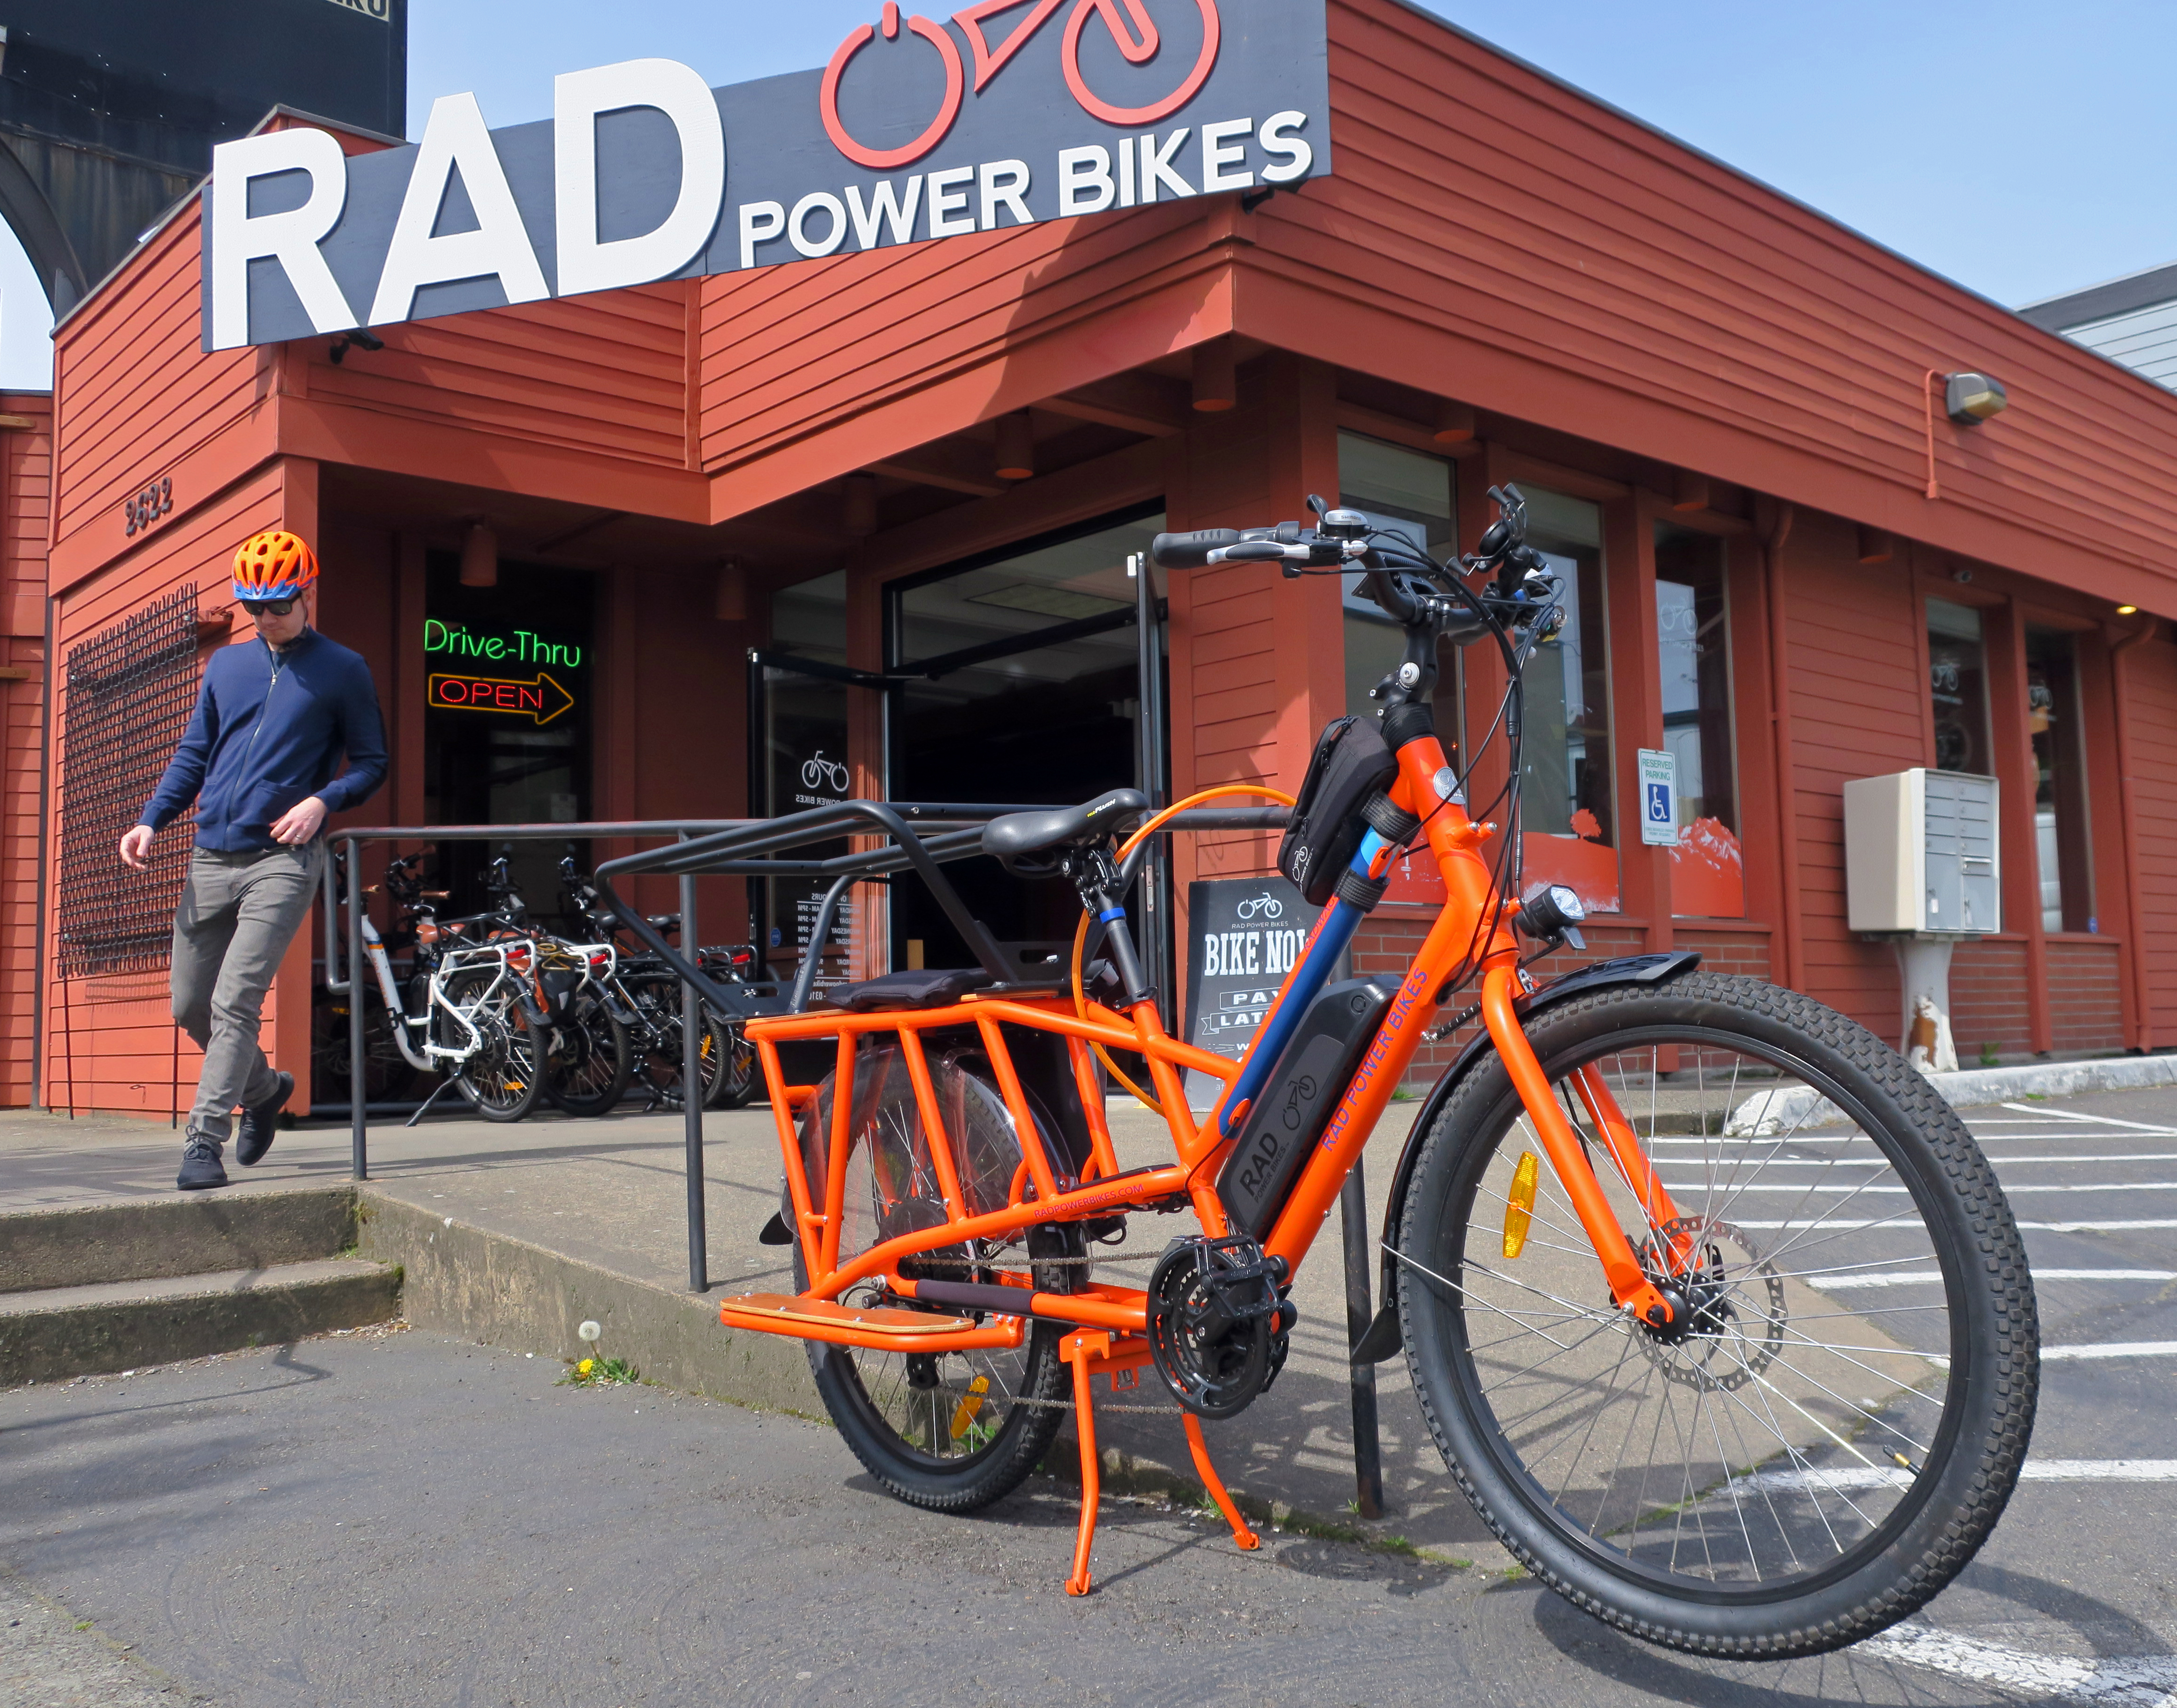 The Rad Power Bikes showroom in Ballard features the companies popular line of e-bikes.